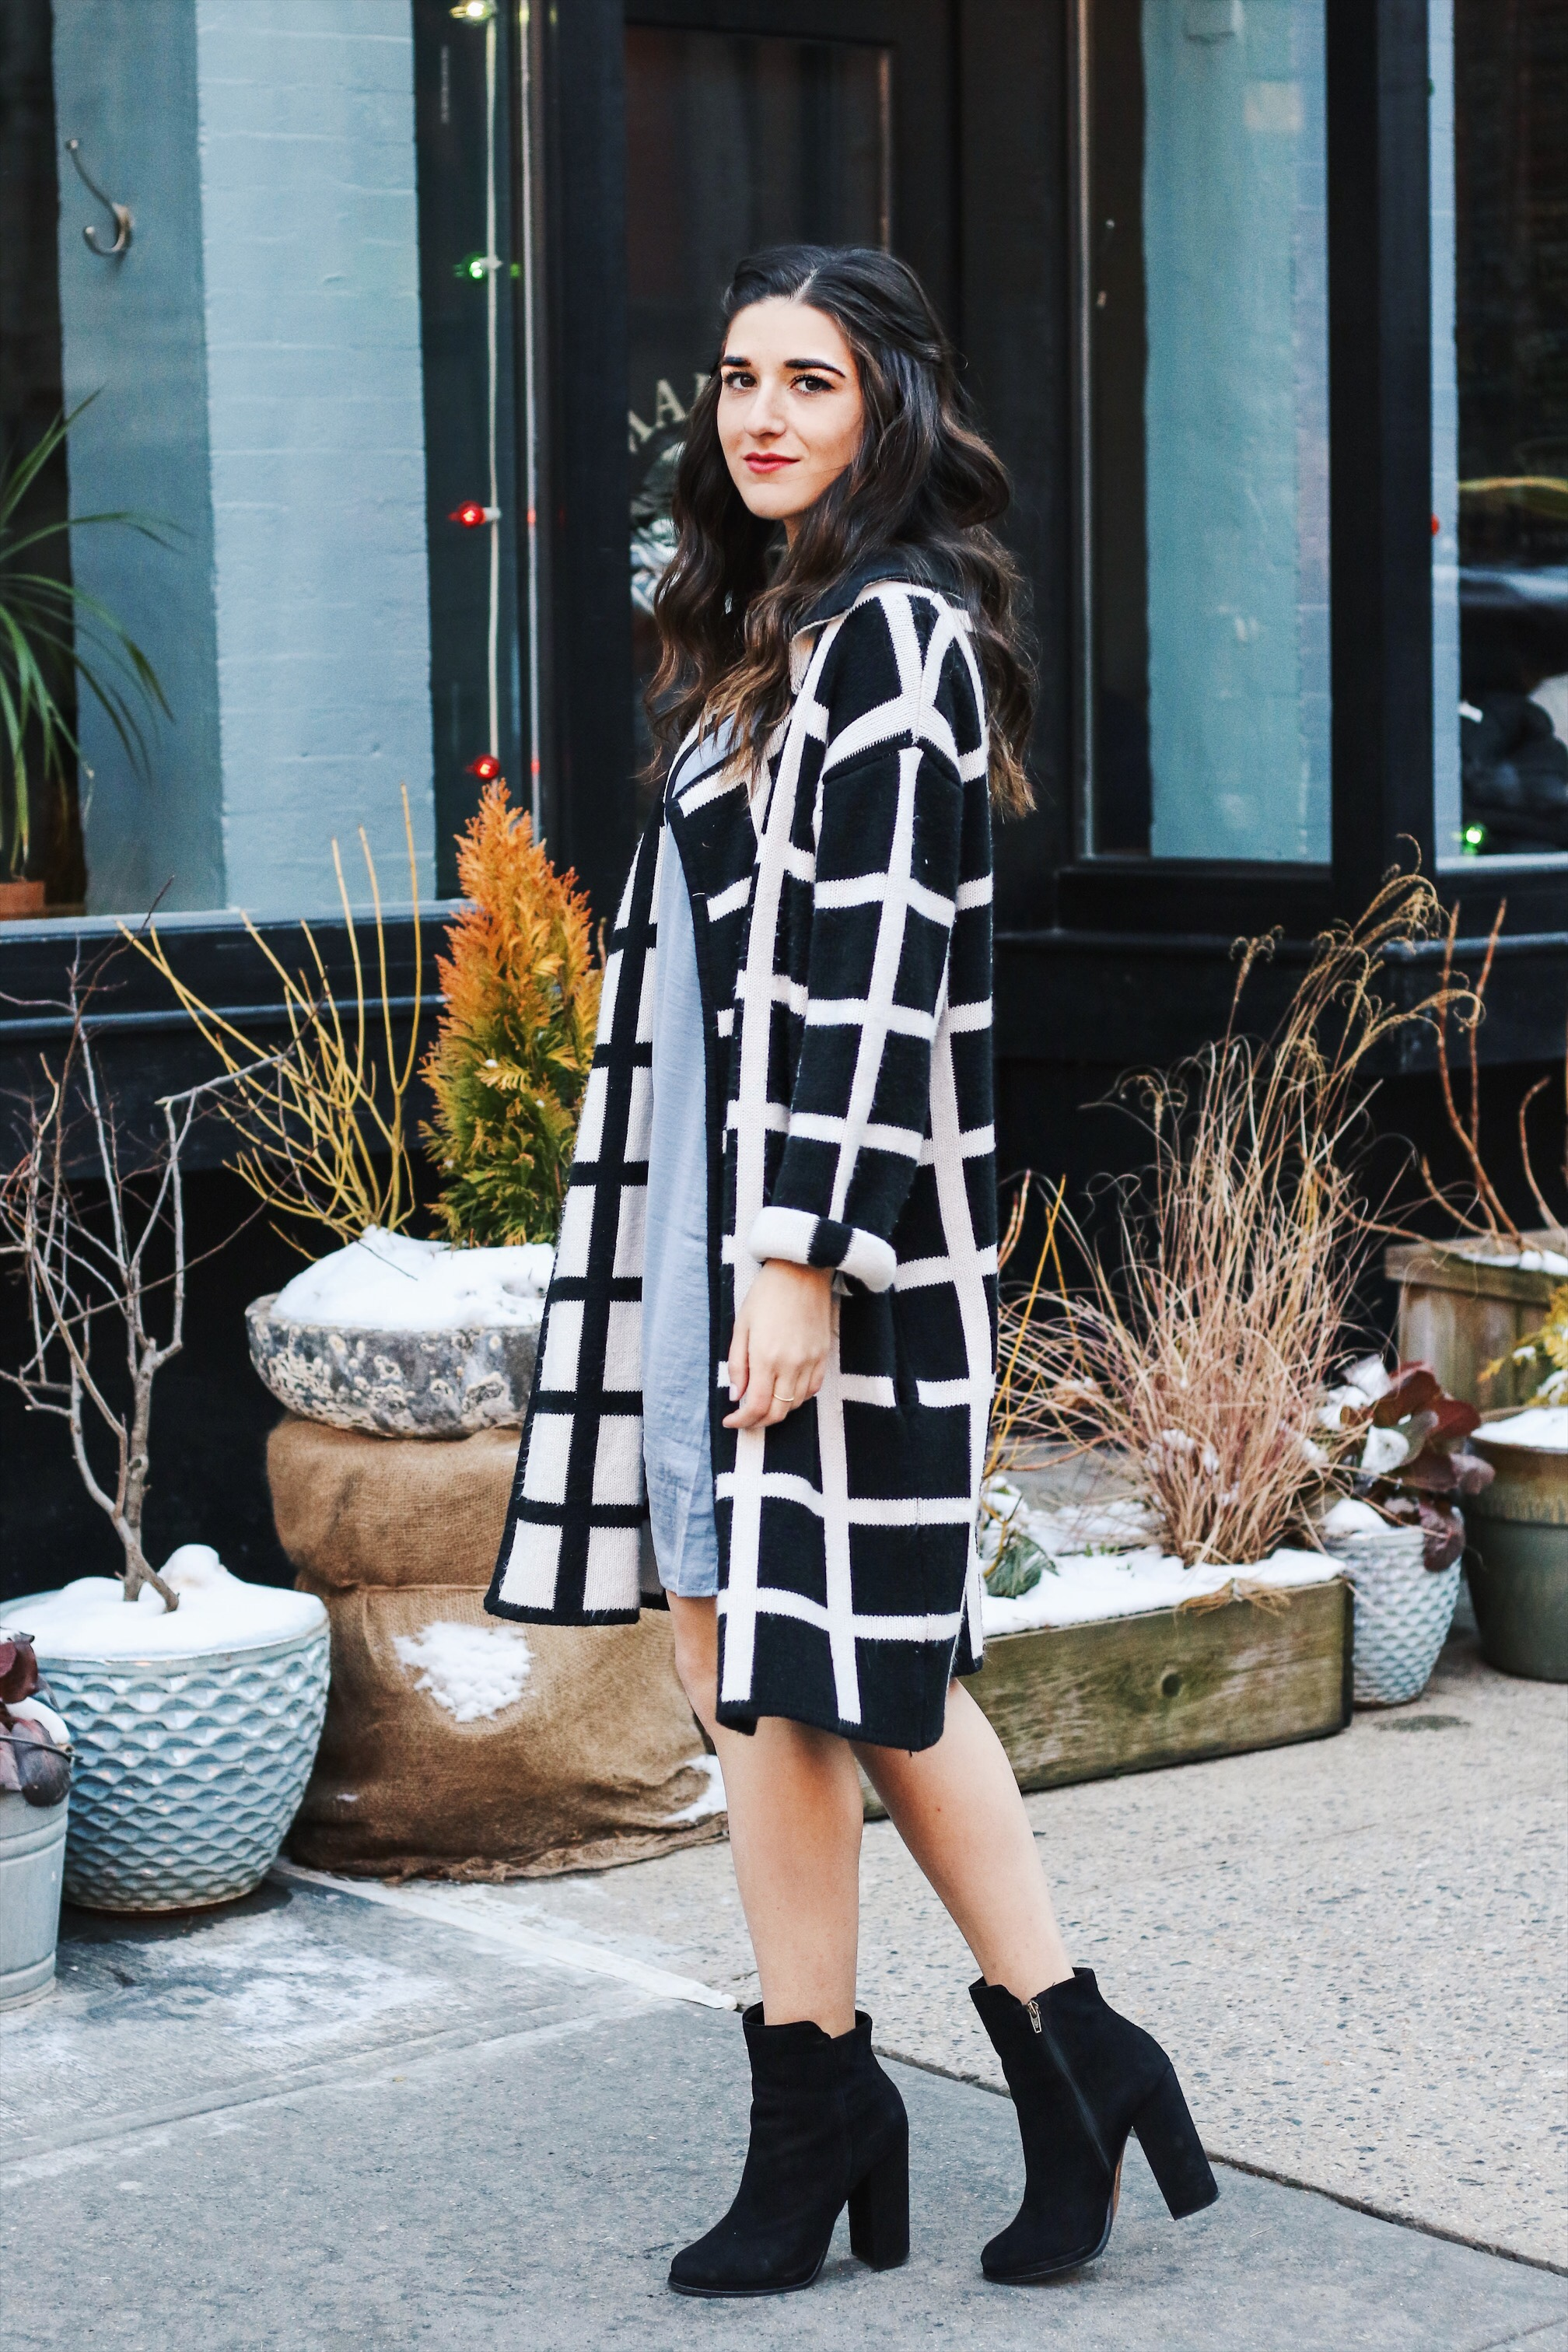 Slip Dress Oversized Cardigan The Job That Got Away Esther Santer Fashion Blog NYC Street Style Blogger Outfit OOTD Trendy Blue Black White Girl Women Bag Purse Henri Bendel Shop Buy Shoes Ankle Boots Inspo Photoshoot Winter Wearing Hair Beauty Layers.JPG